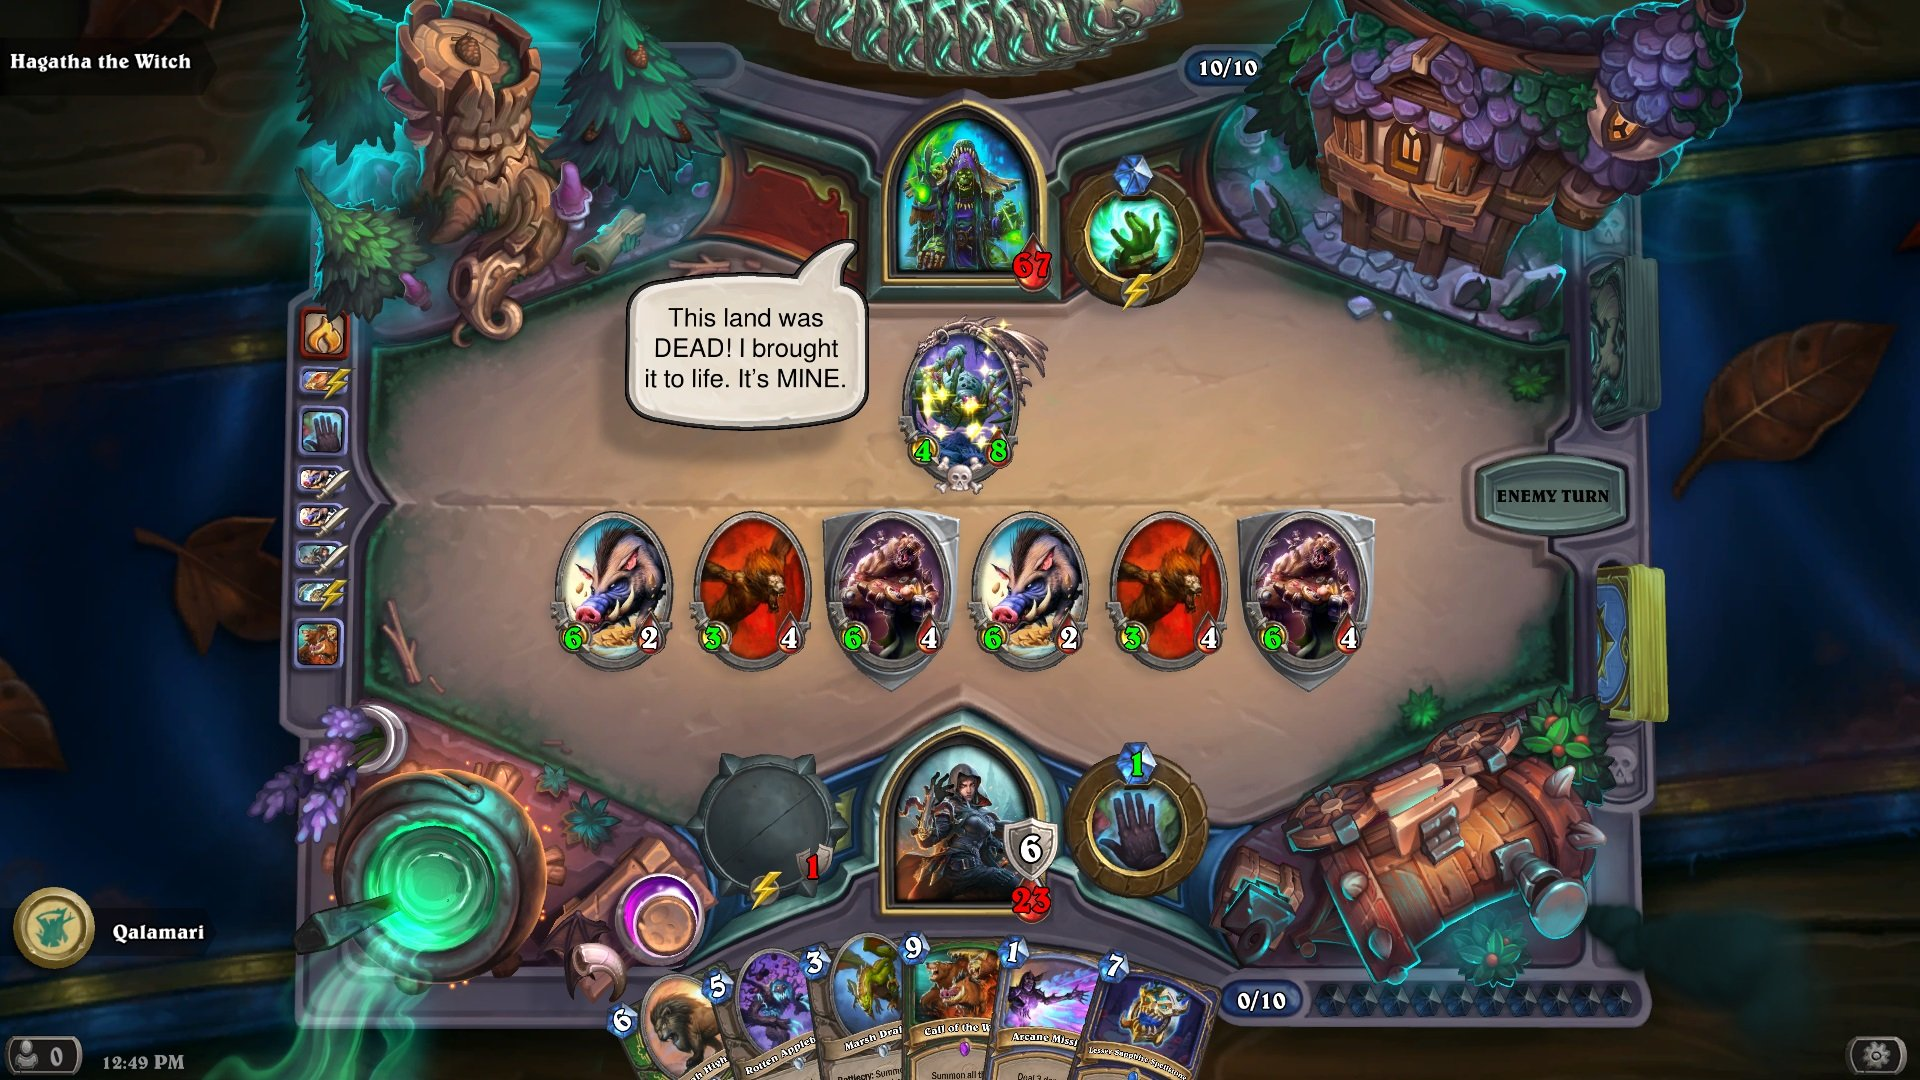 Hearthstone: The Witchwood review